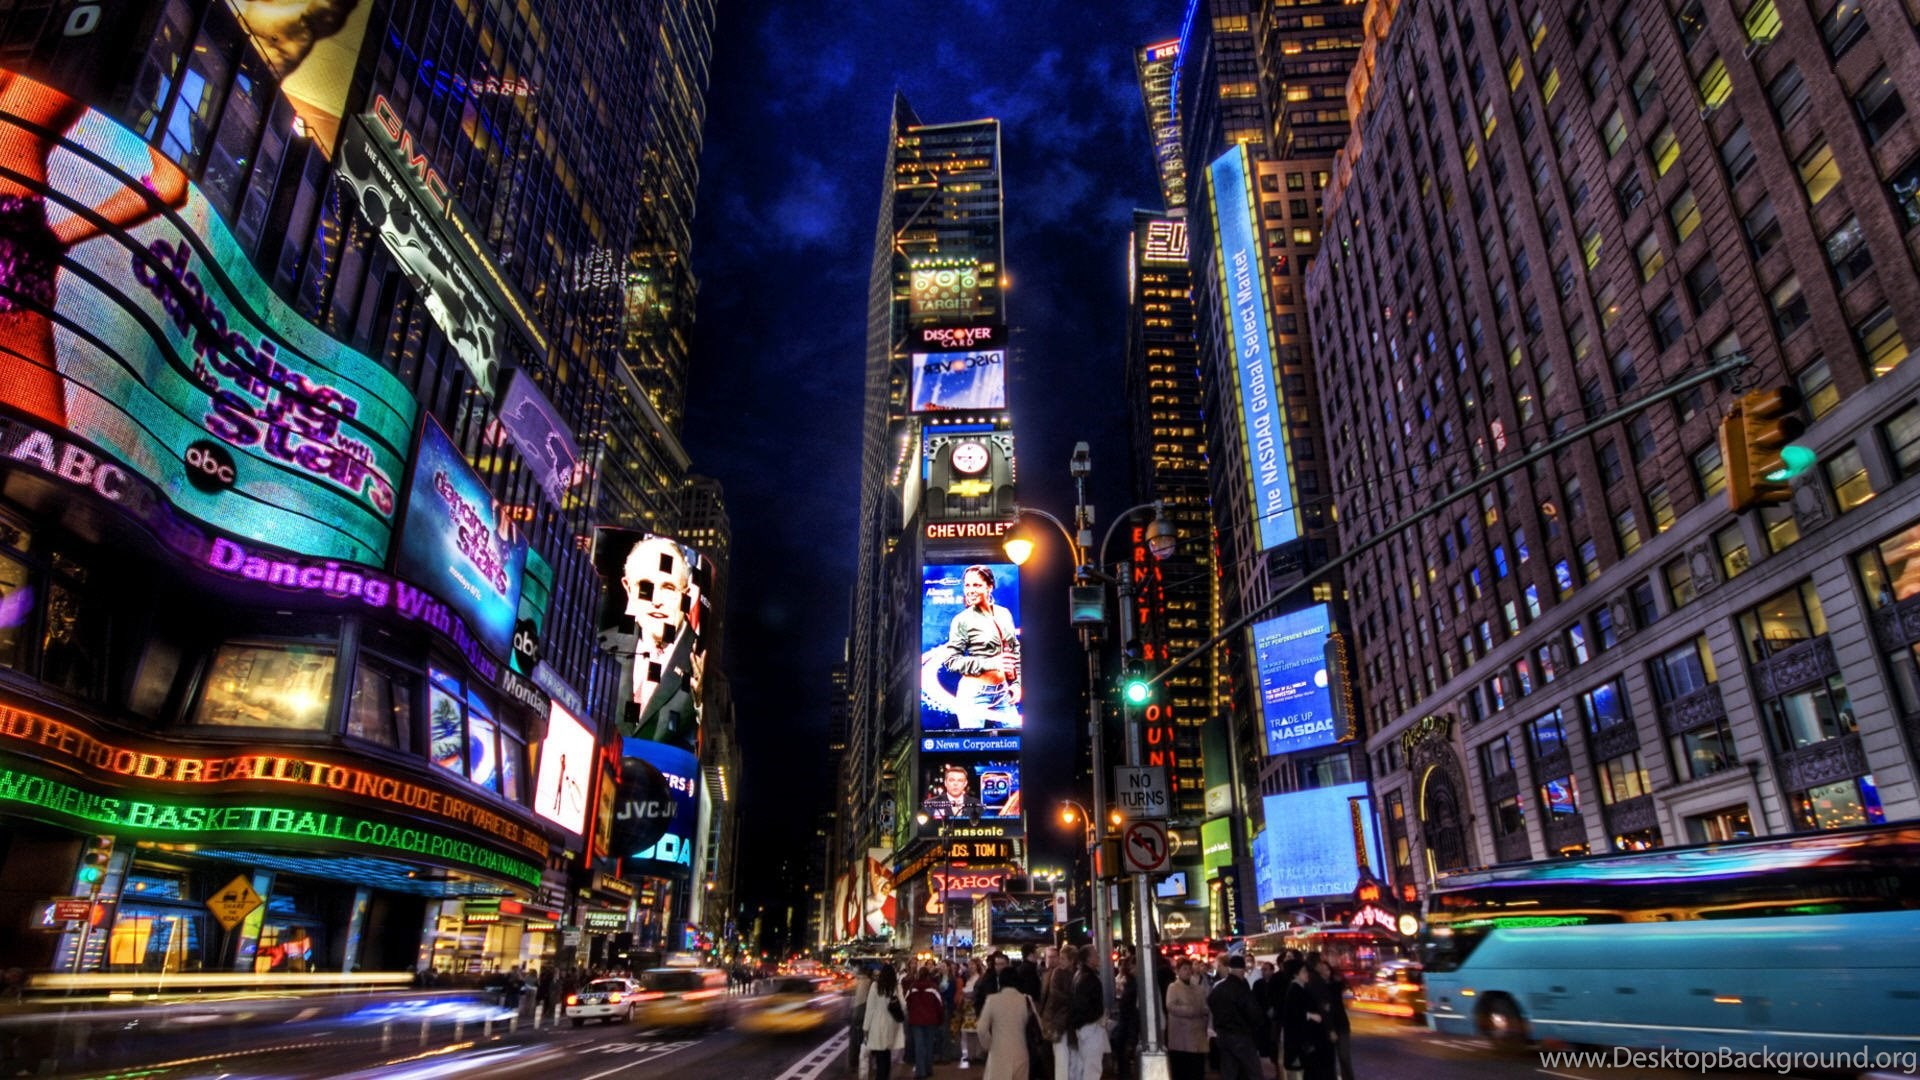 High Resolution NYC New York City Street Wallpapers HD 8 Full Size